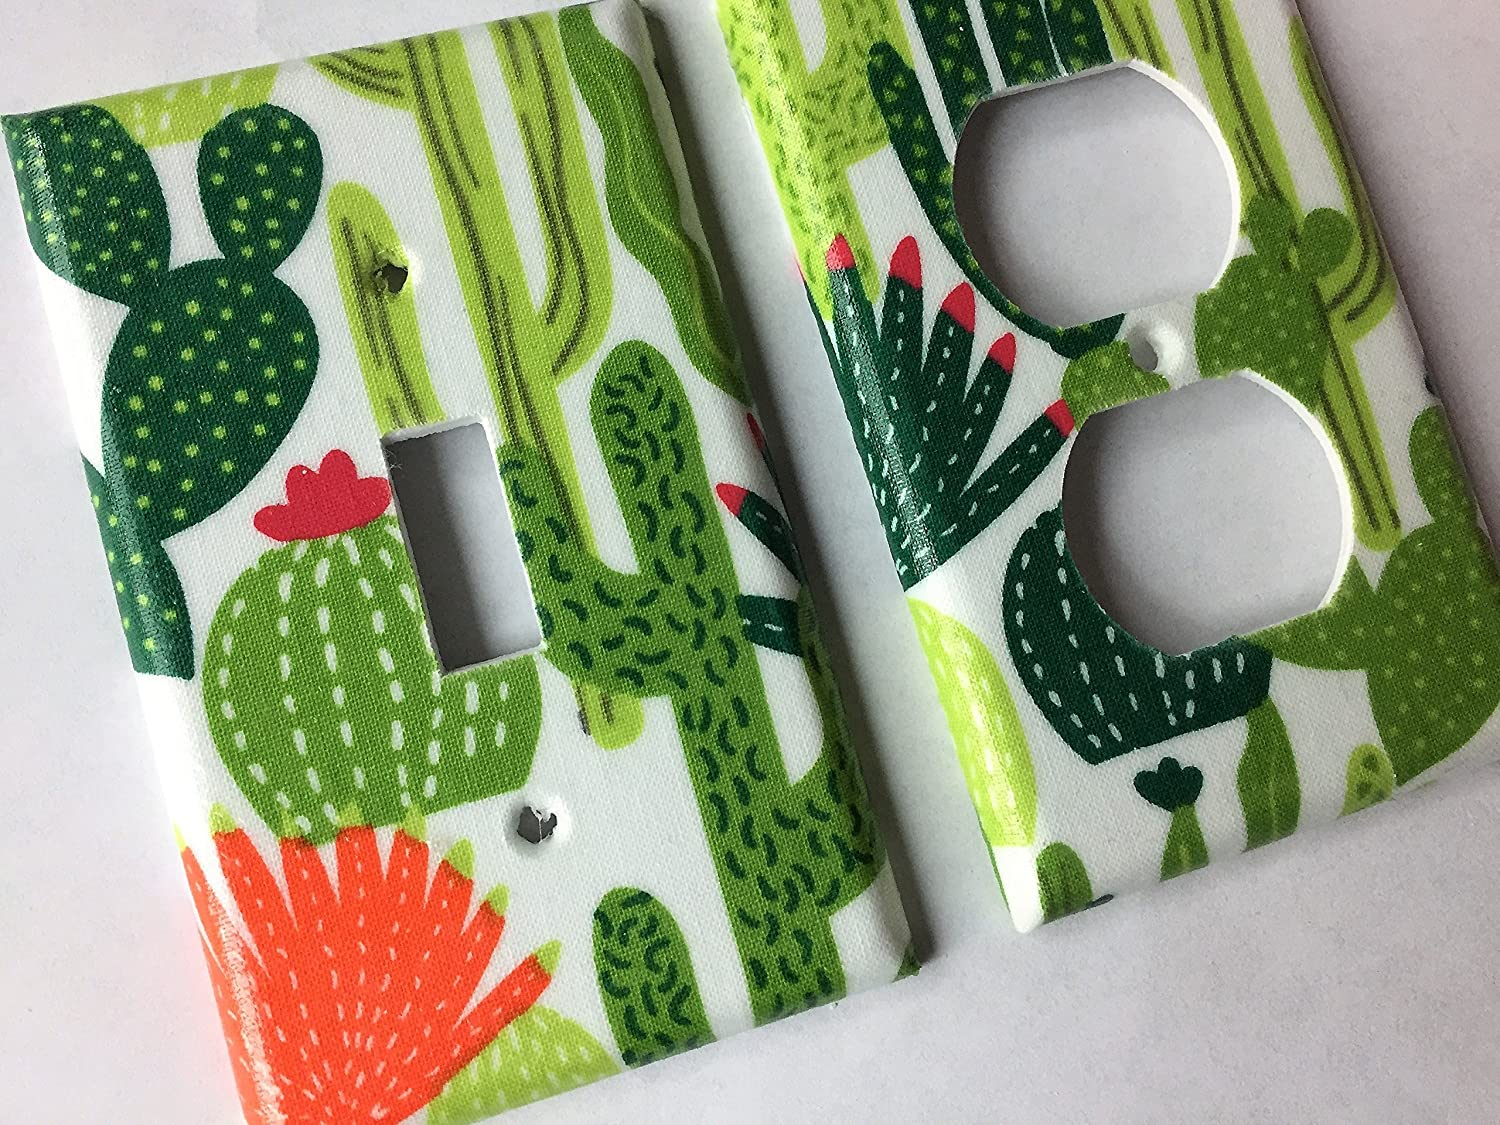 Green Succulent And Cactus Light Switch Plate Cover - Various Sizes Offered